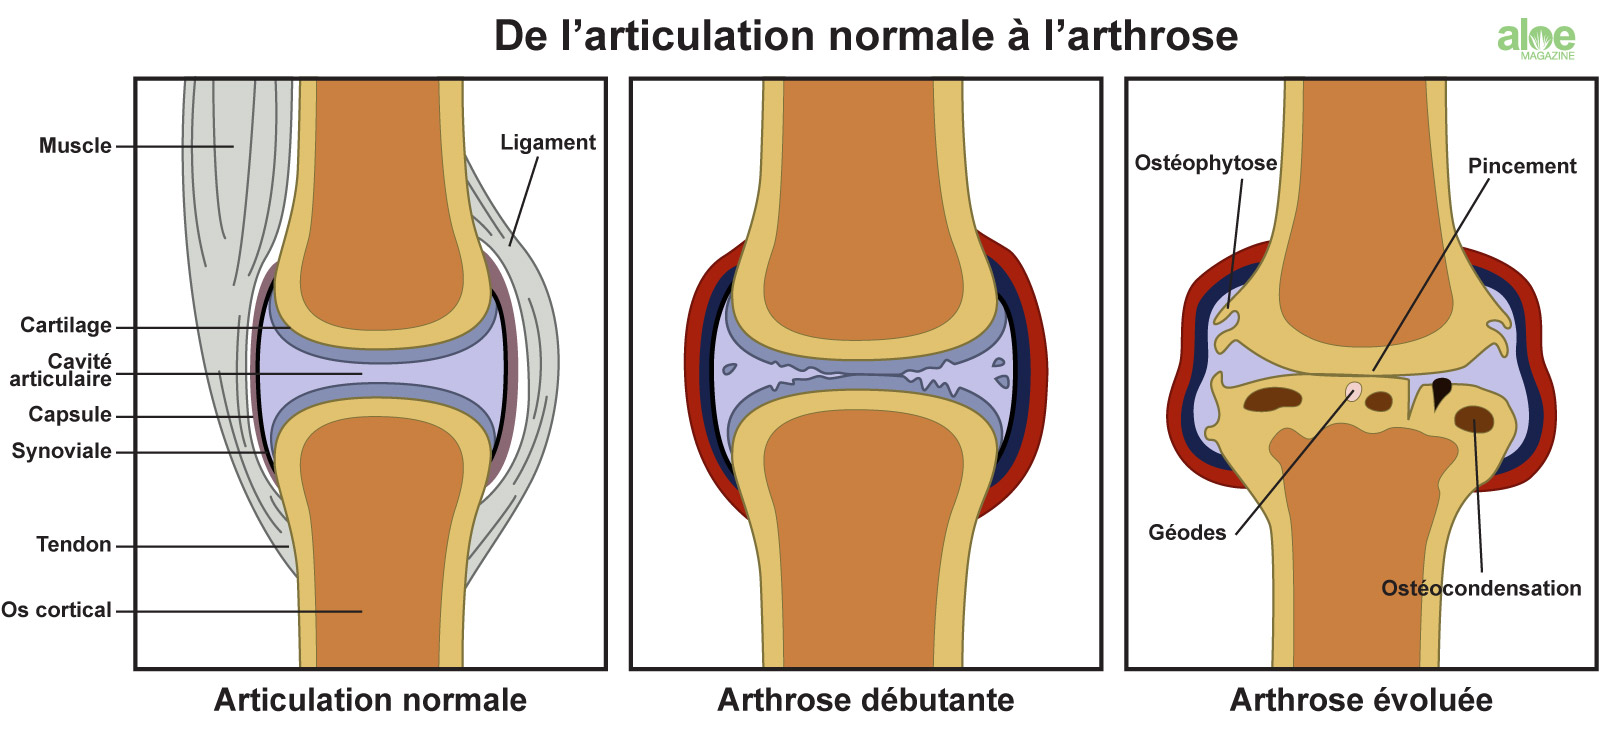 Articulations et Arthrose, dégradation du cartilage | Aloe Magazine